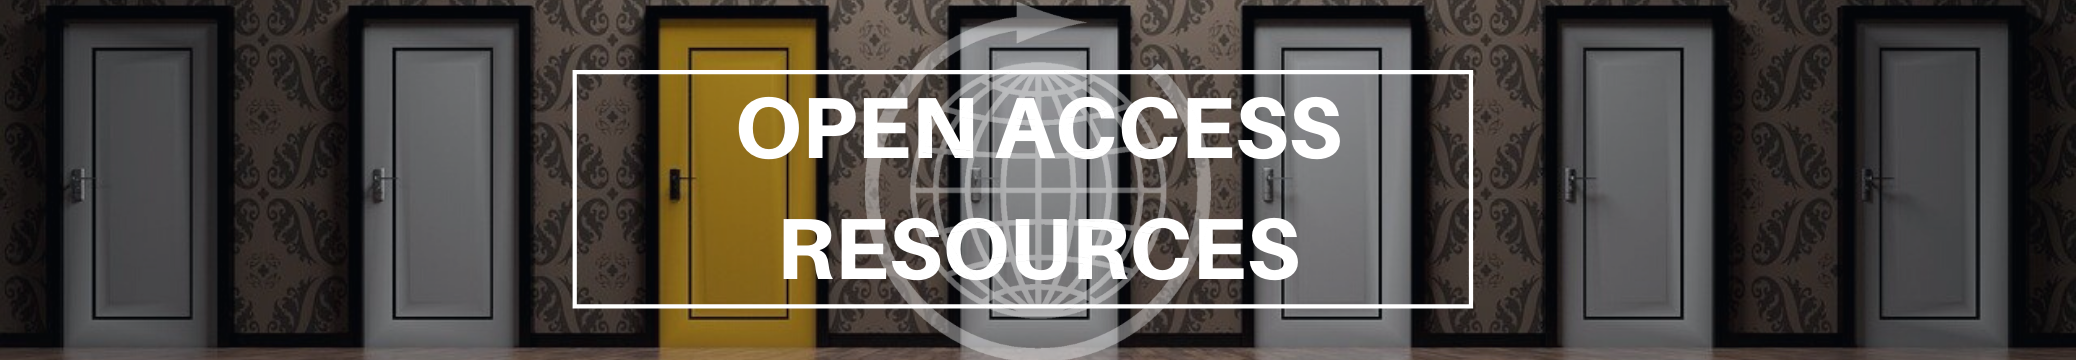 OA Resources banner